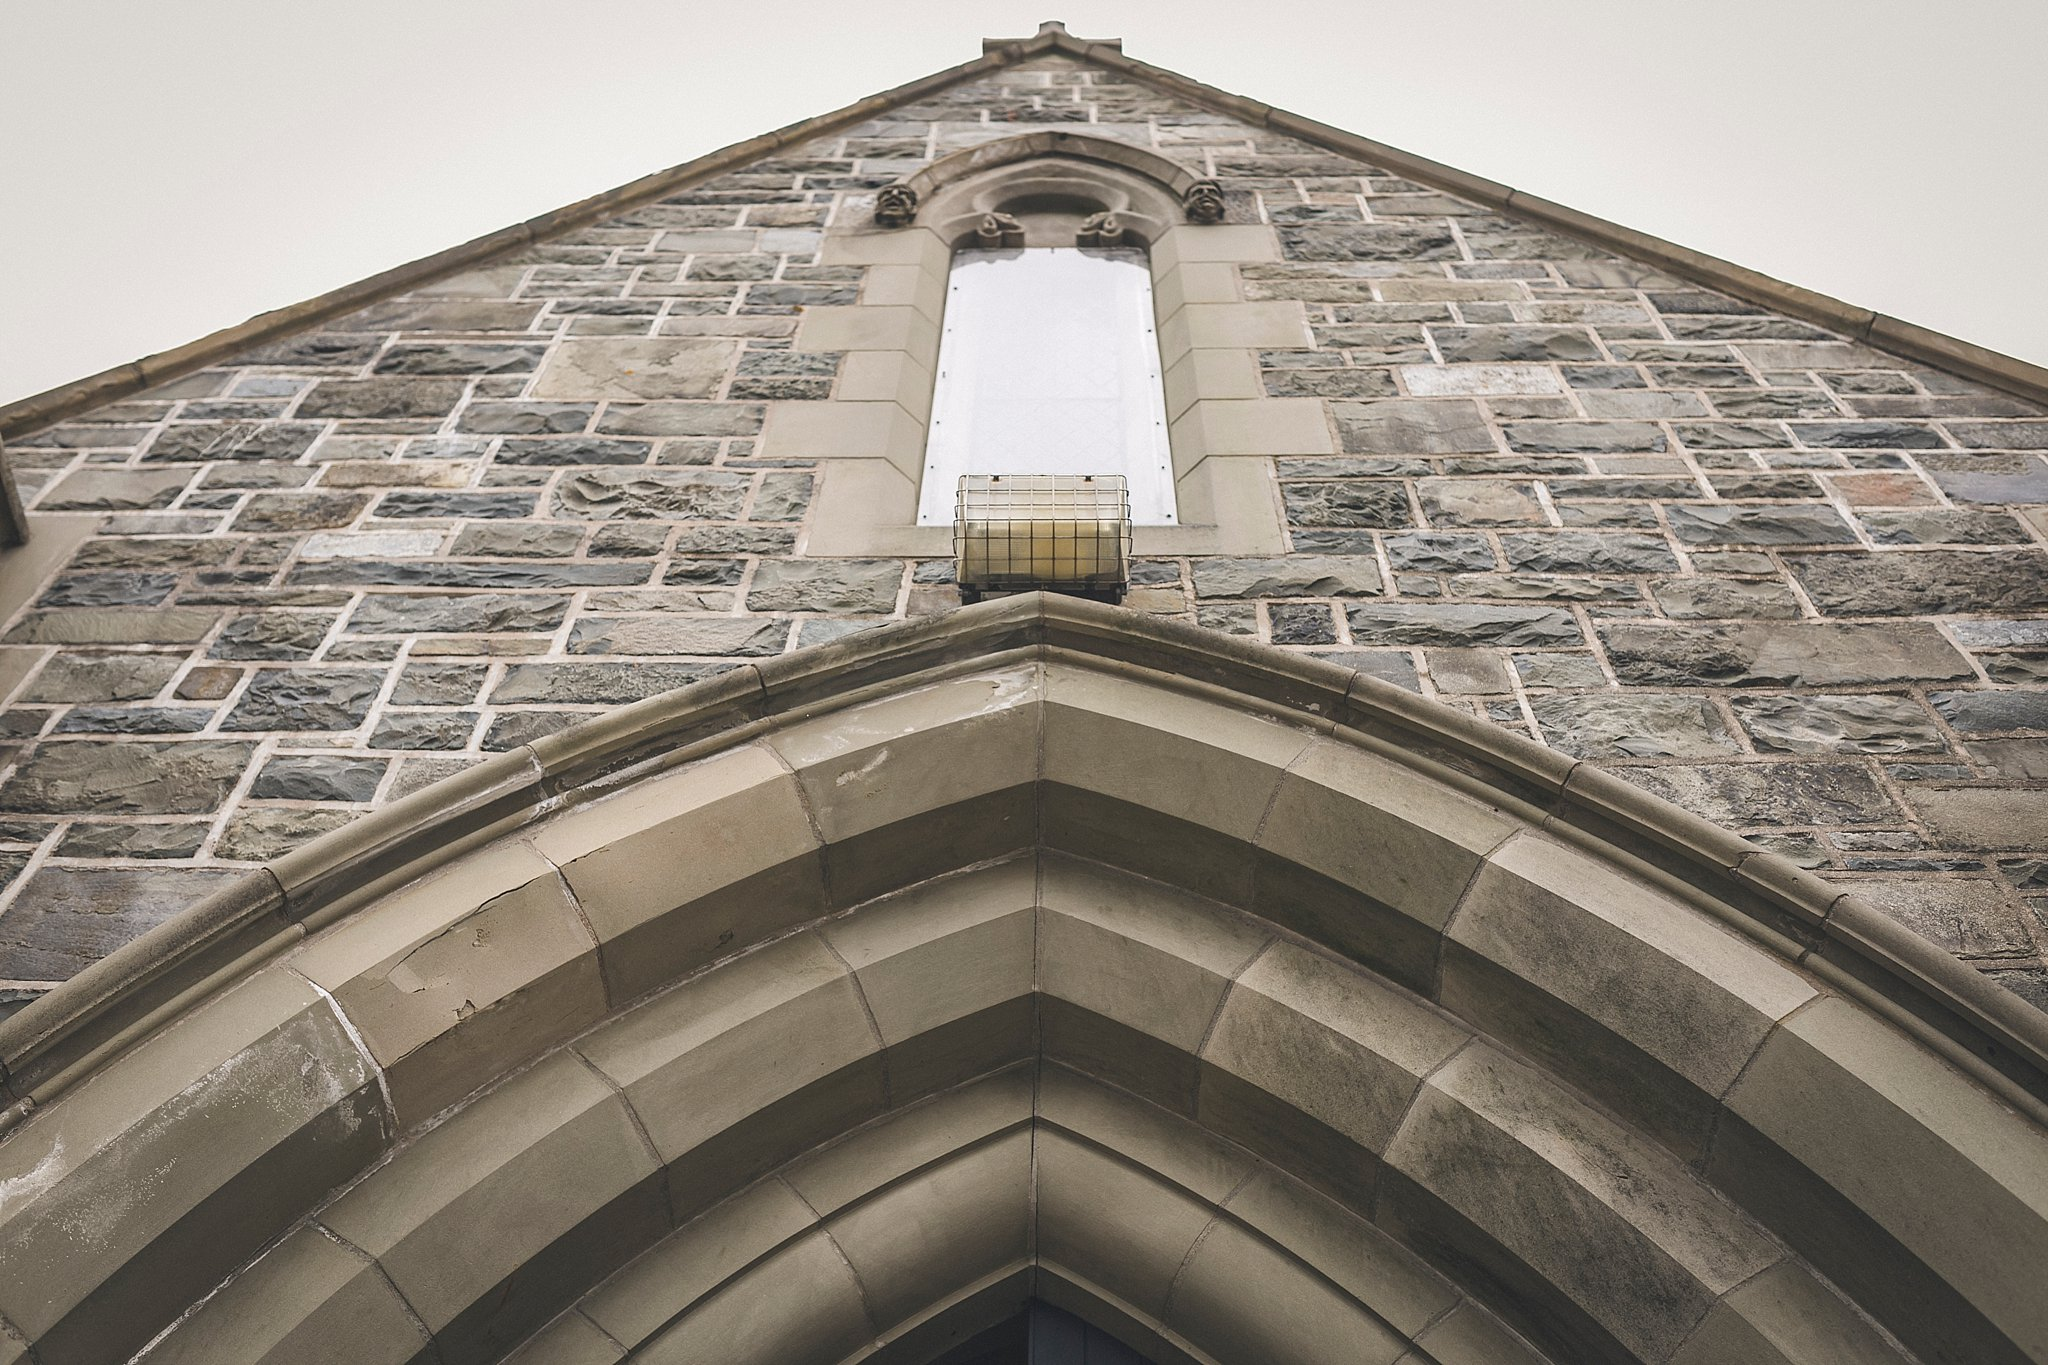 The Anglican Cathedral was the ceremony location for this St. John's, Newfoundland wedding.